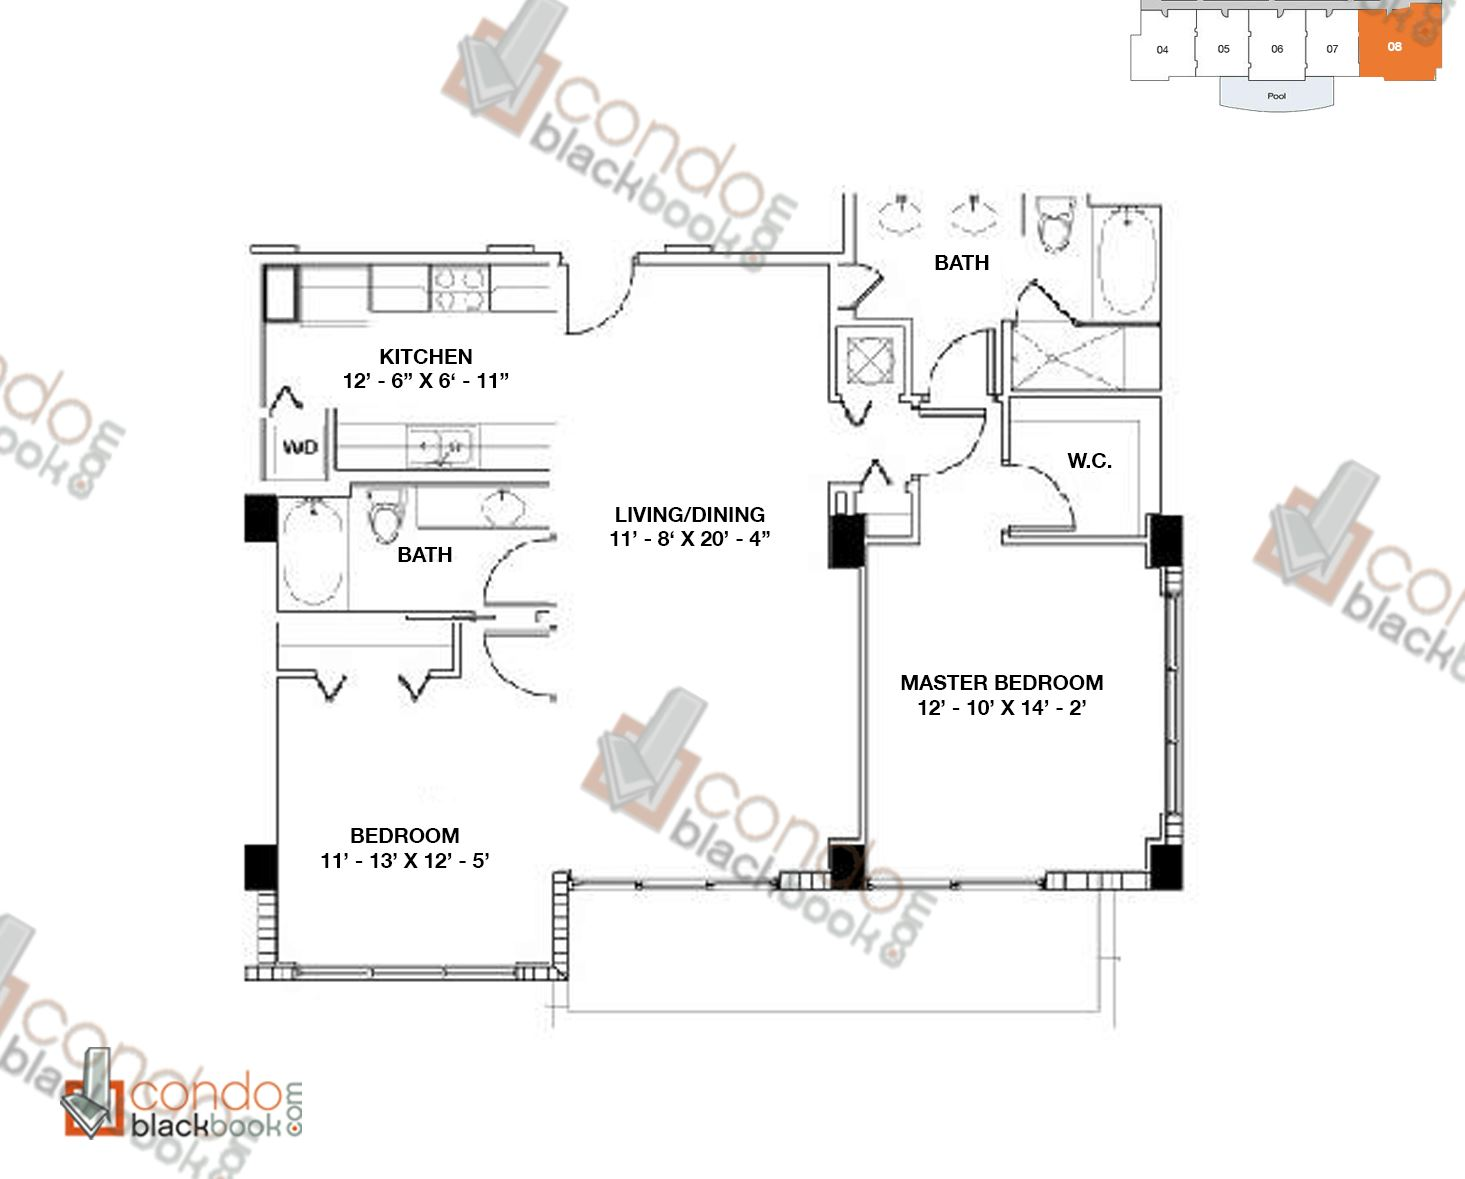 Floor plan for Moon Bay Edgewater Miami, model H, line 08, 2/2 bedrooms, 1159 sq ft